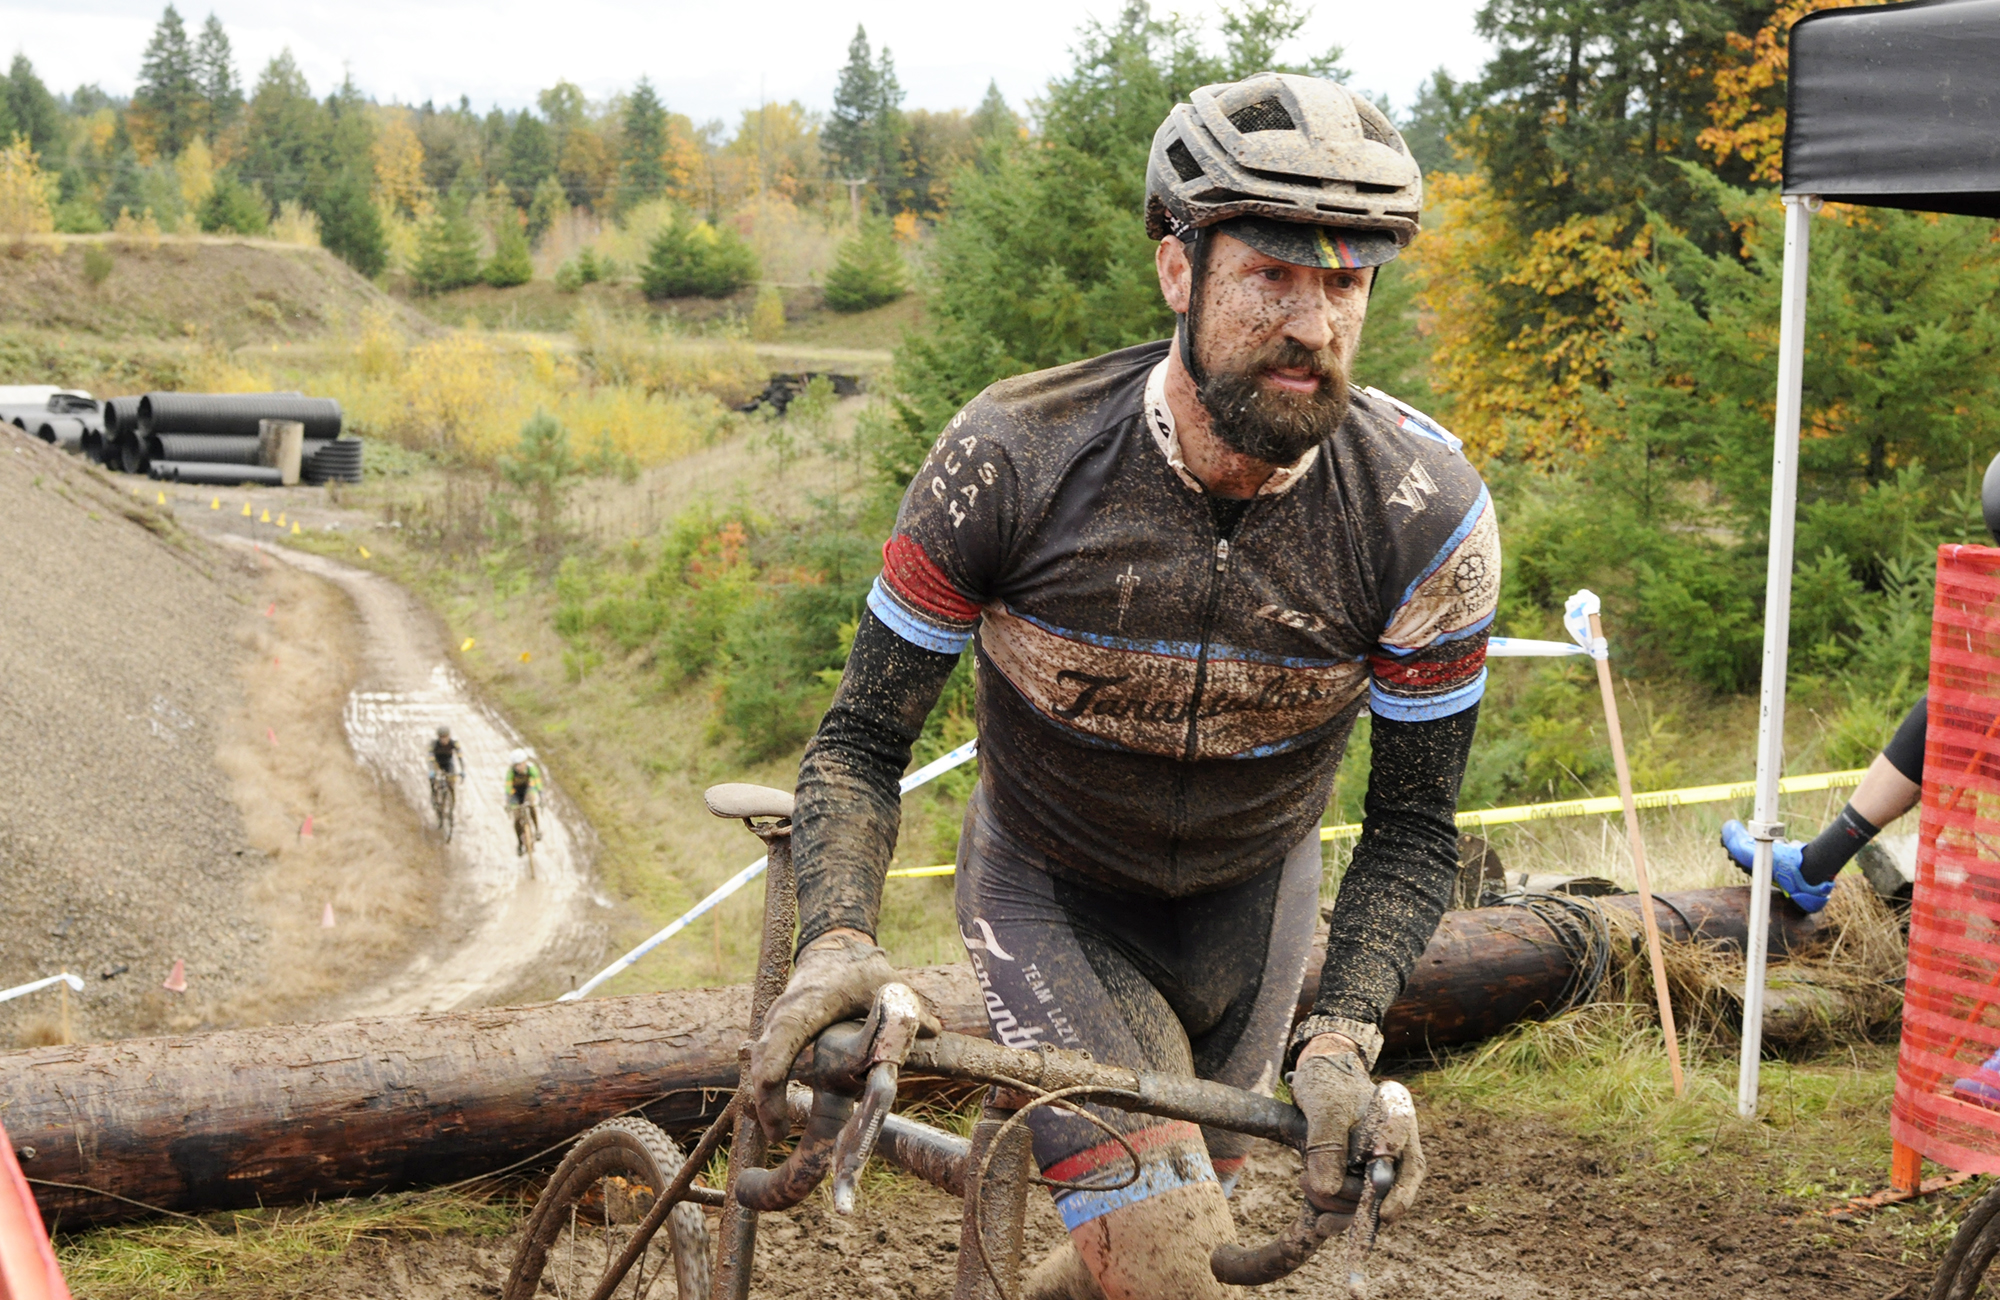 SellwoodCycle_CCBP_50